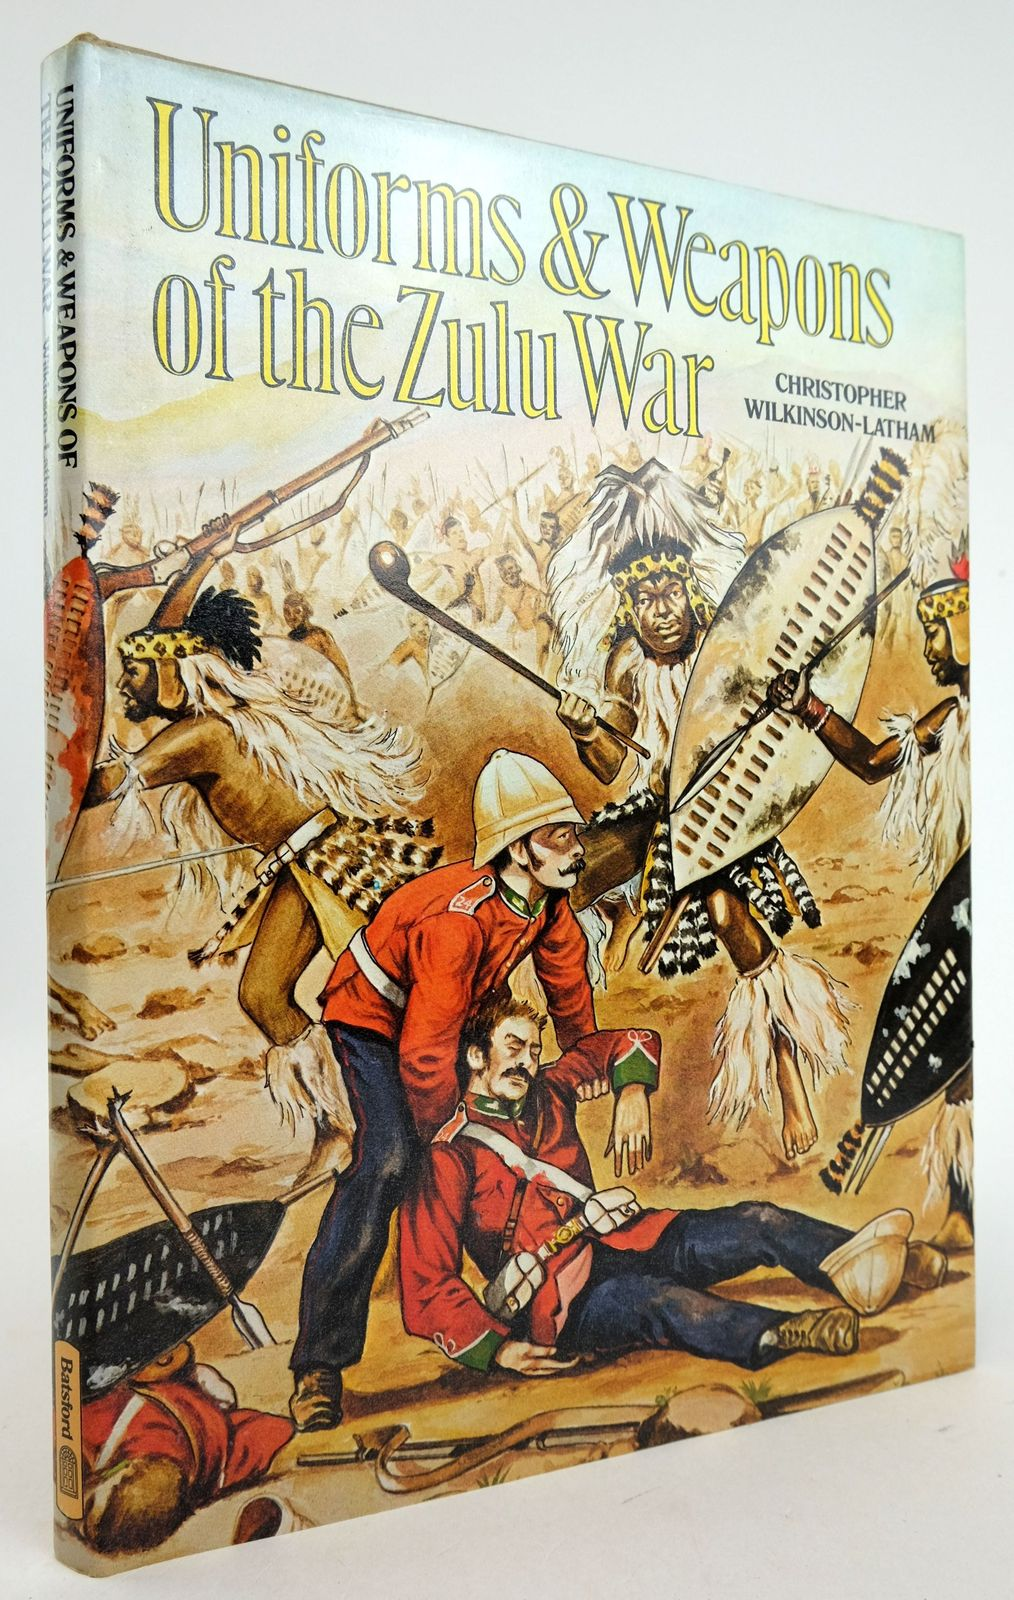 Photo of UNIFORMS & WEAPONS OF THE ZULU WAR written by Wilkinson-Latham, Christopher published by B.T. Batsford (STOCK CODE: 1819703)  for sale by Stella & Rose's Books